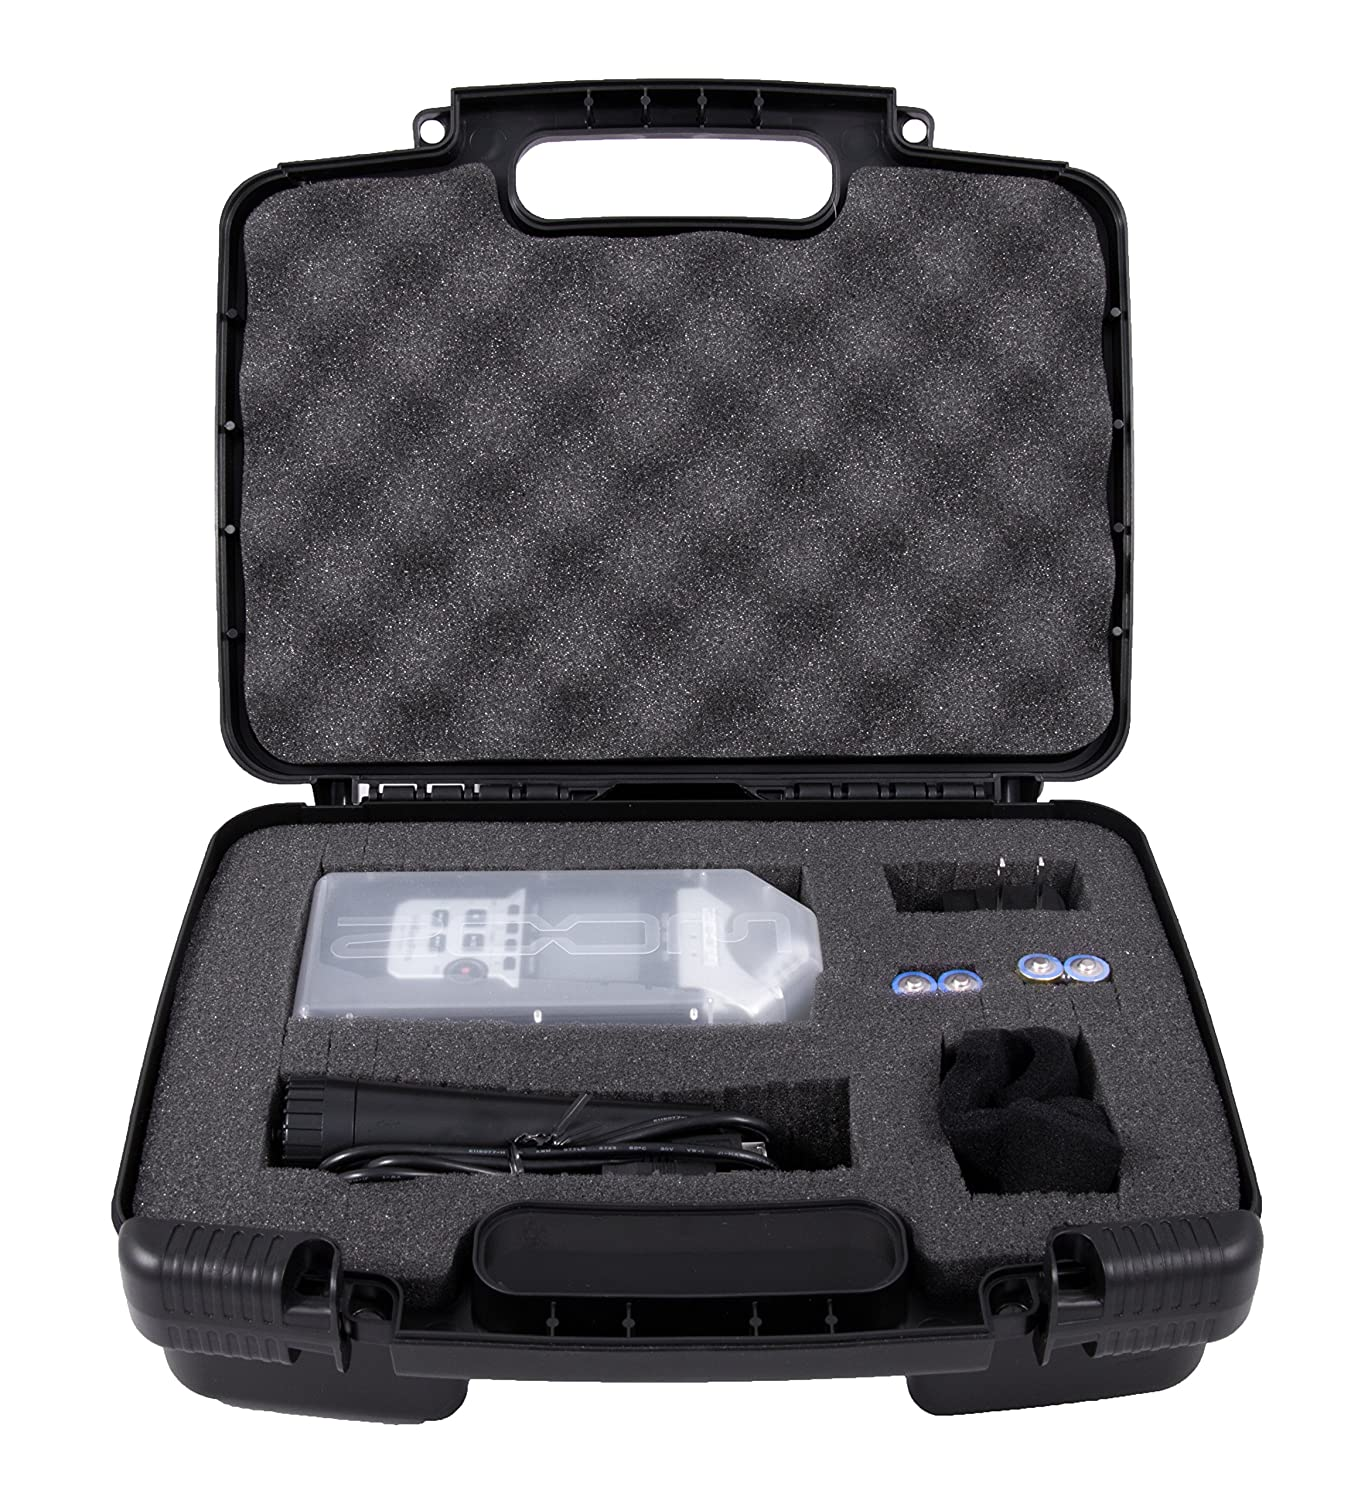 CASEMATIX Portable Recorder Carrying Travel Hard Case w/Dense Foam fits ZOOM H1, H2N, H5, H4N, H6, F8, Q8 Handy Music Recorders, Charger, Mic Tripod Adapter and Accessories 10766773